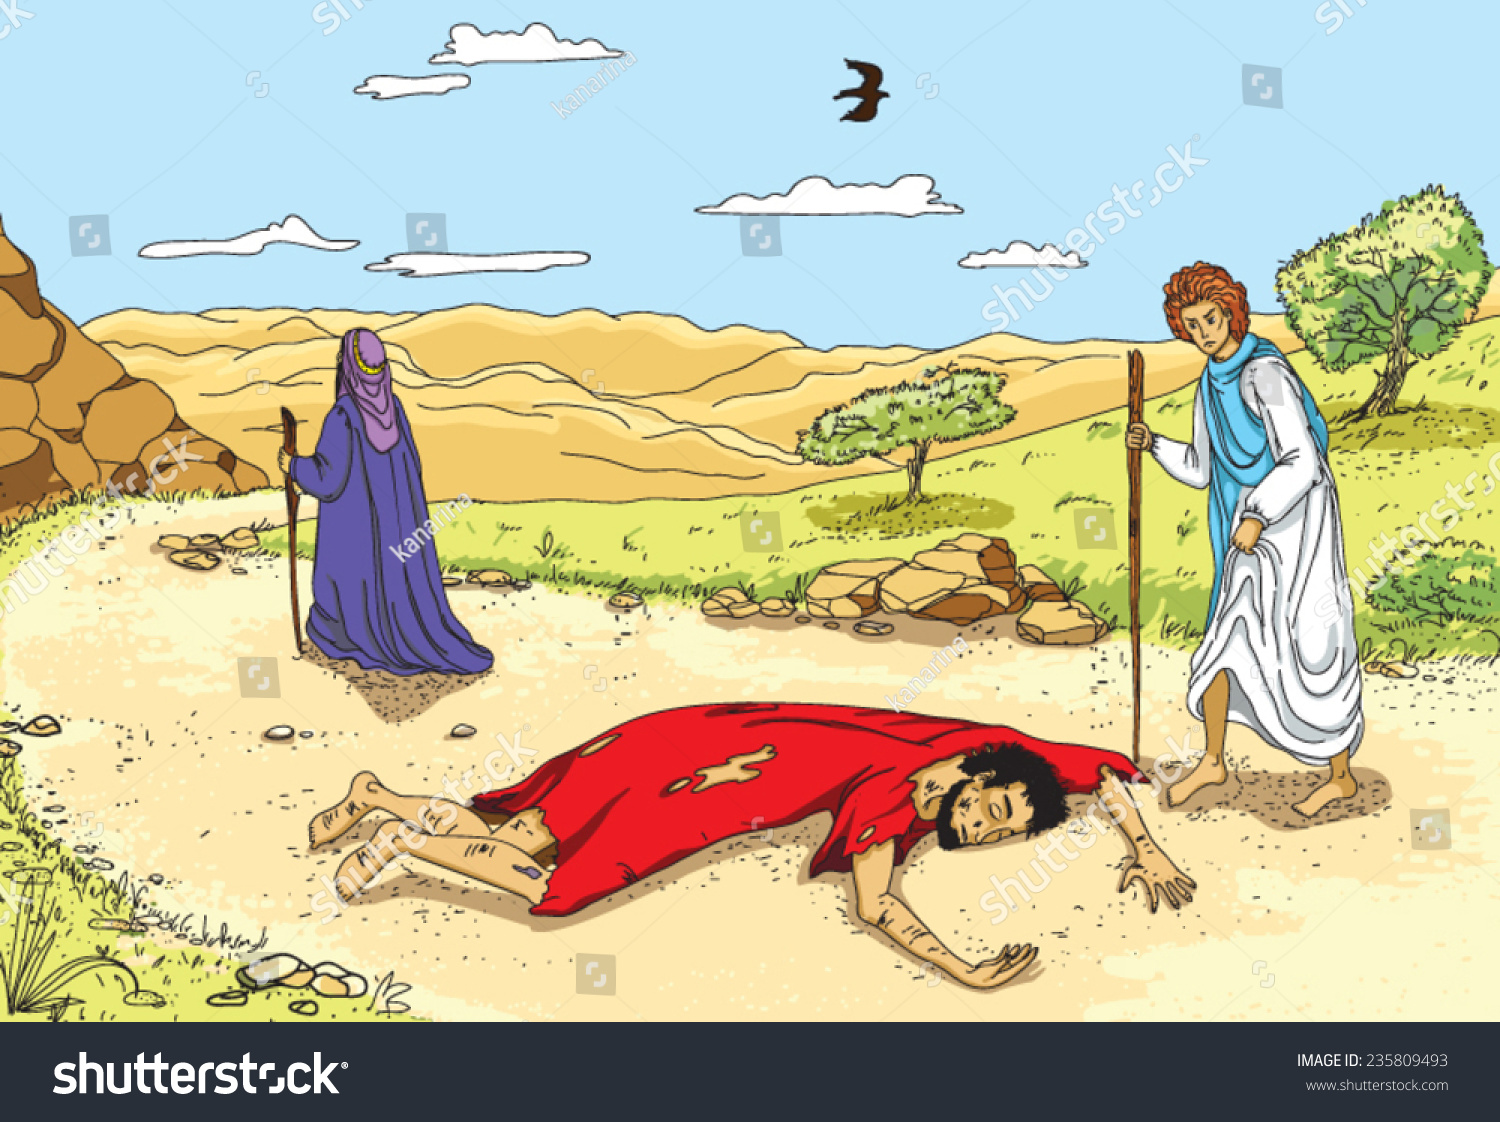 Illustration Parable Good Samaritan Stock Vector 235809493 ...